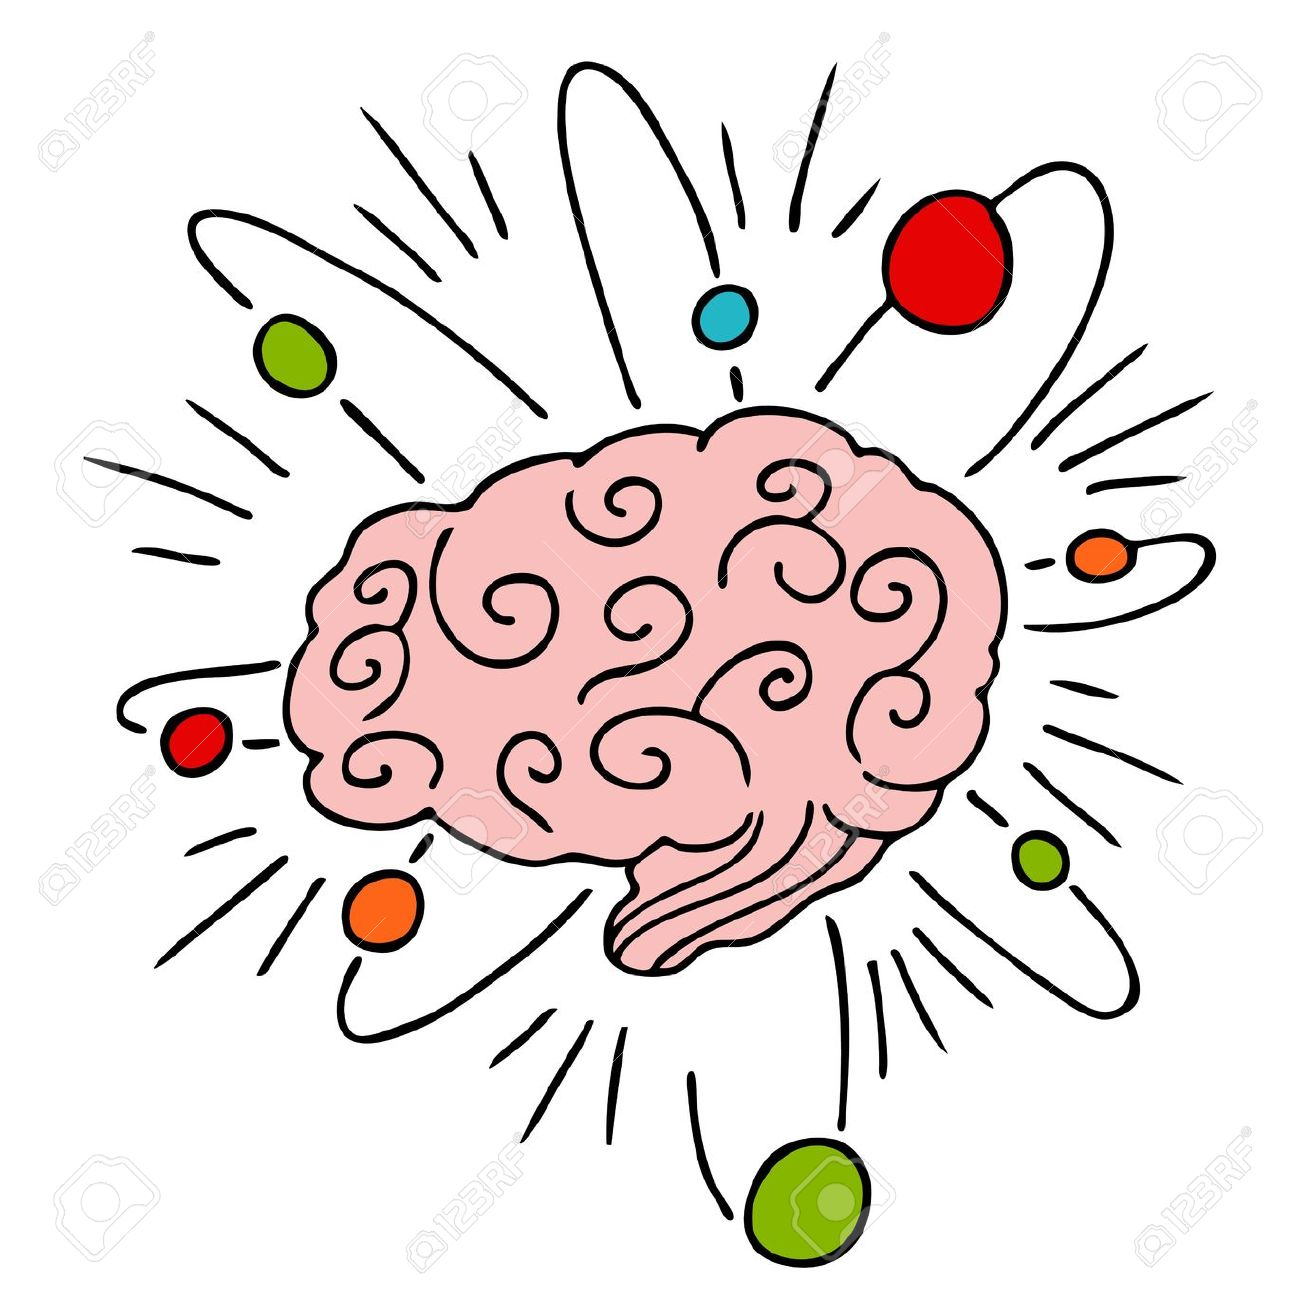 Smart brain clipart 7 » Clipart Station.